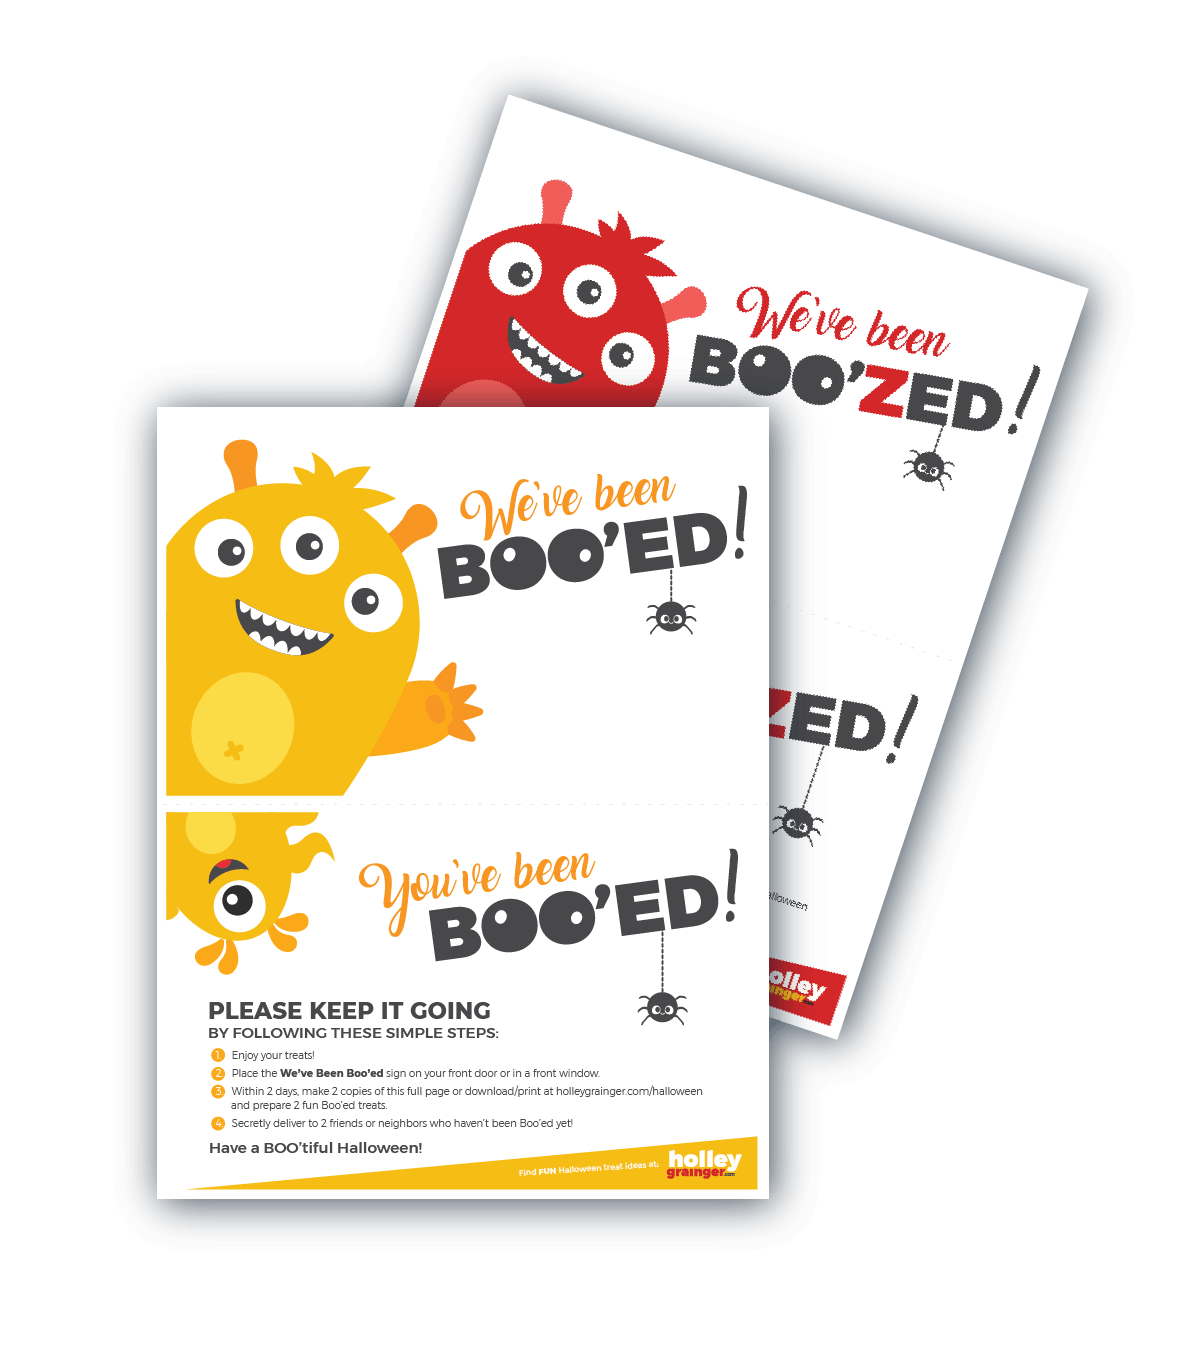 picture regarding You've Been Boozed Printable named Youve Been Boozed! Totally free Halloween Printable Holley Grainger